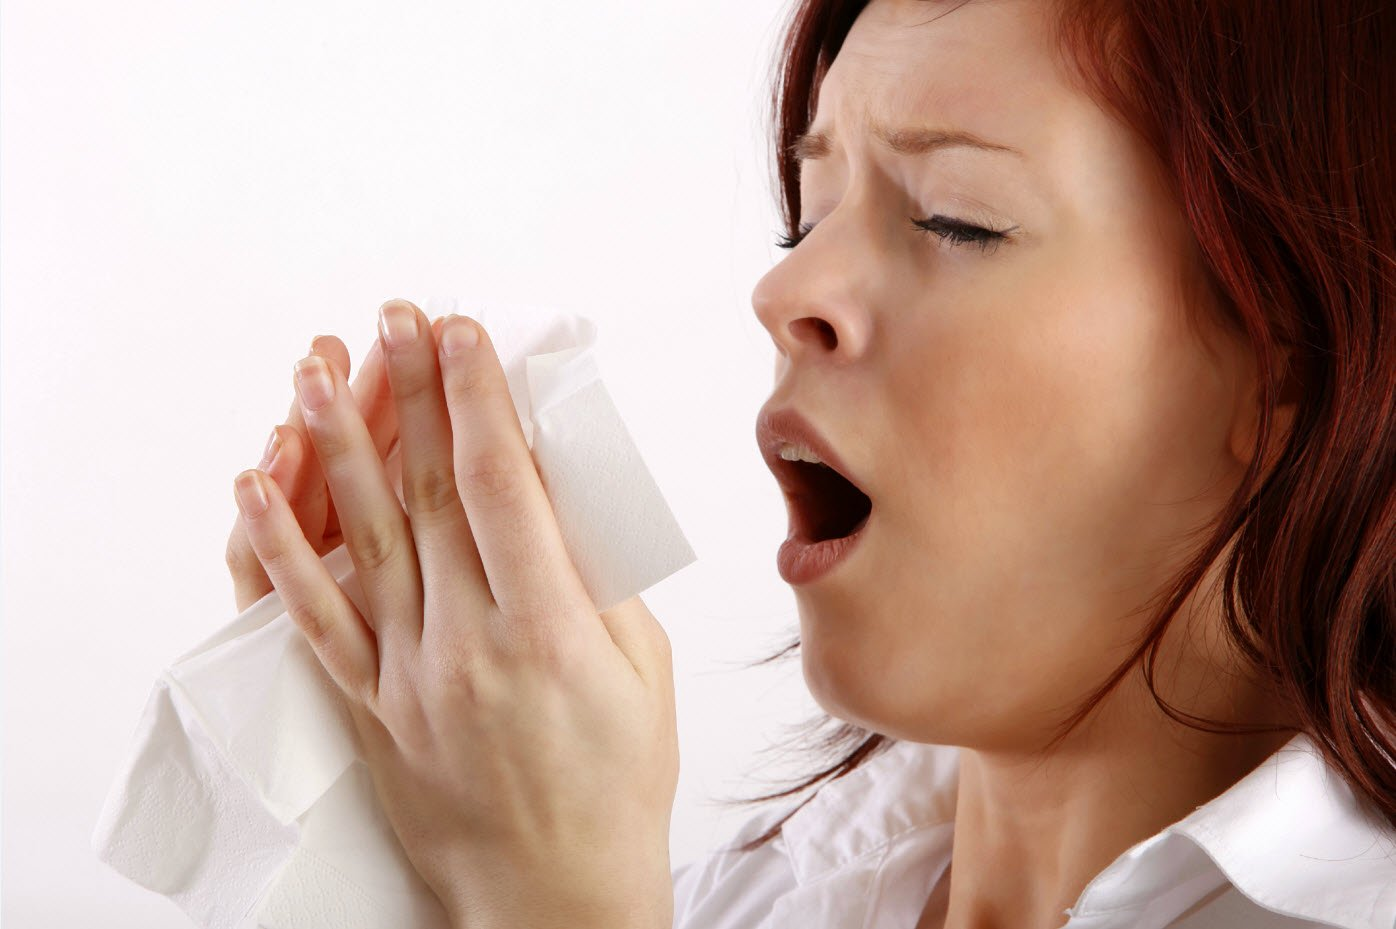 Sneezing, allergy, acupuncture for allergy relief